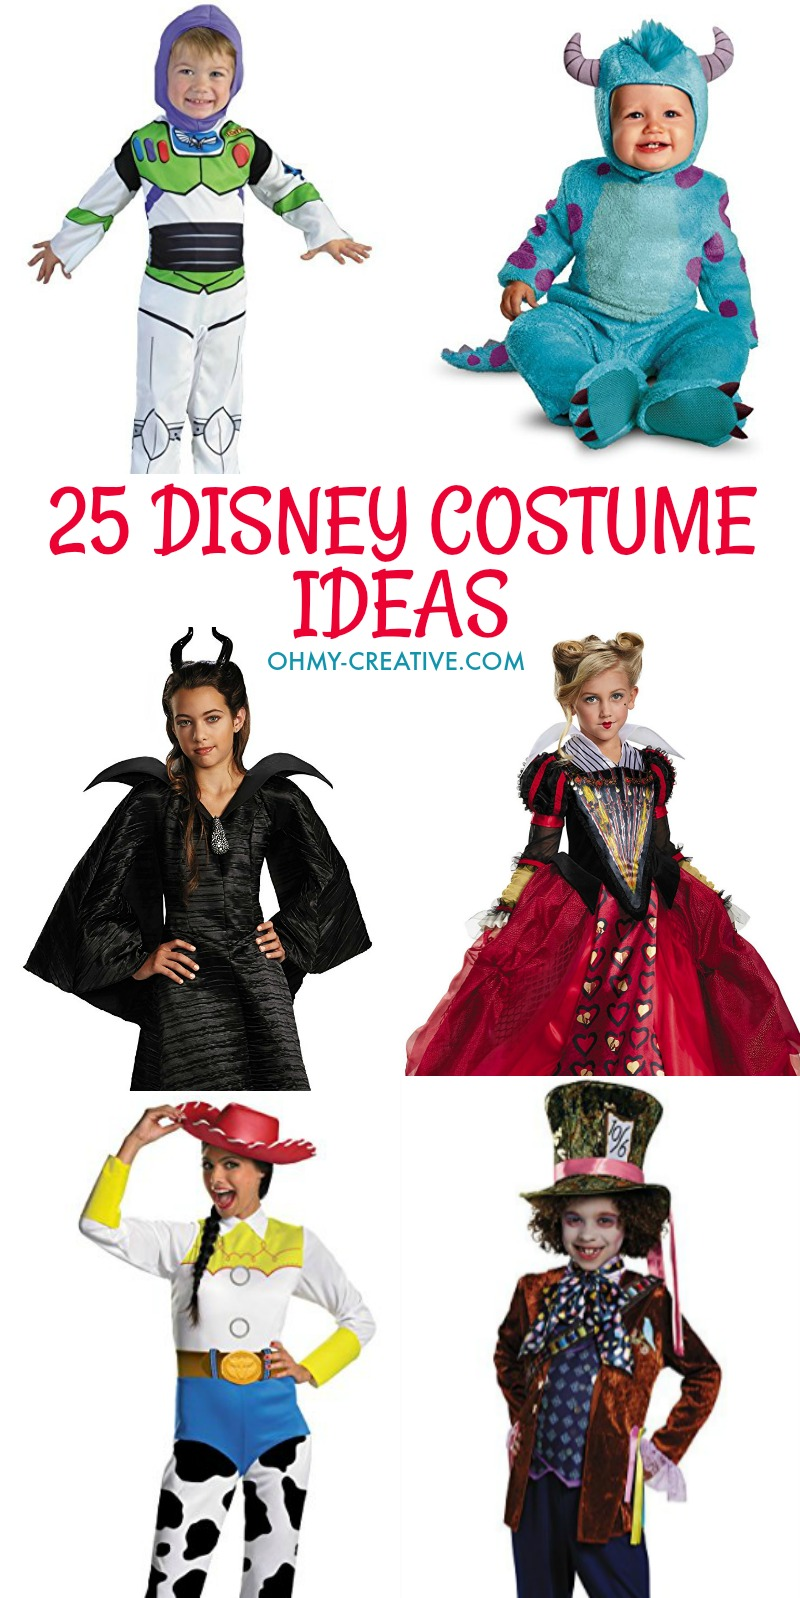 Creative Halloween Costumes For Kidsgirl.25 Disney Costume Ideas On Amazon Oh My Creative